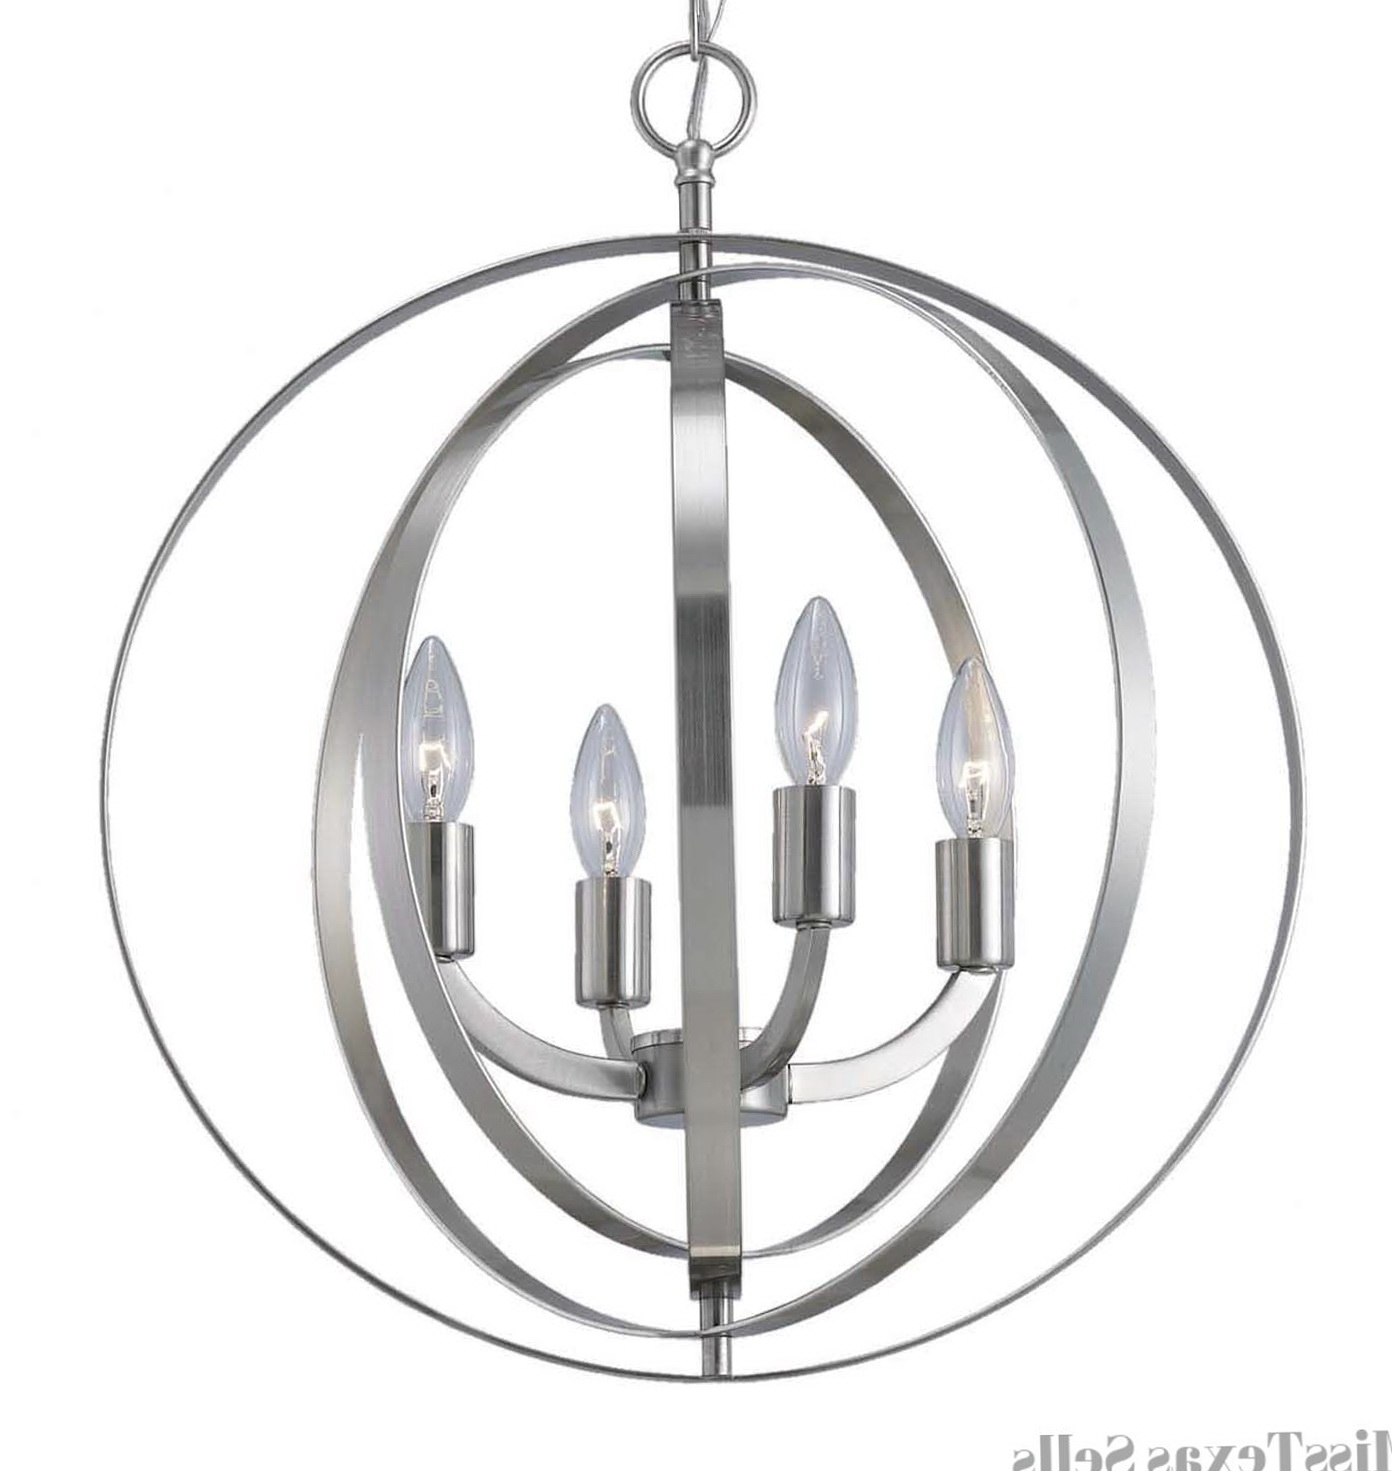 Home Depot Brushed Nickel Chandelier